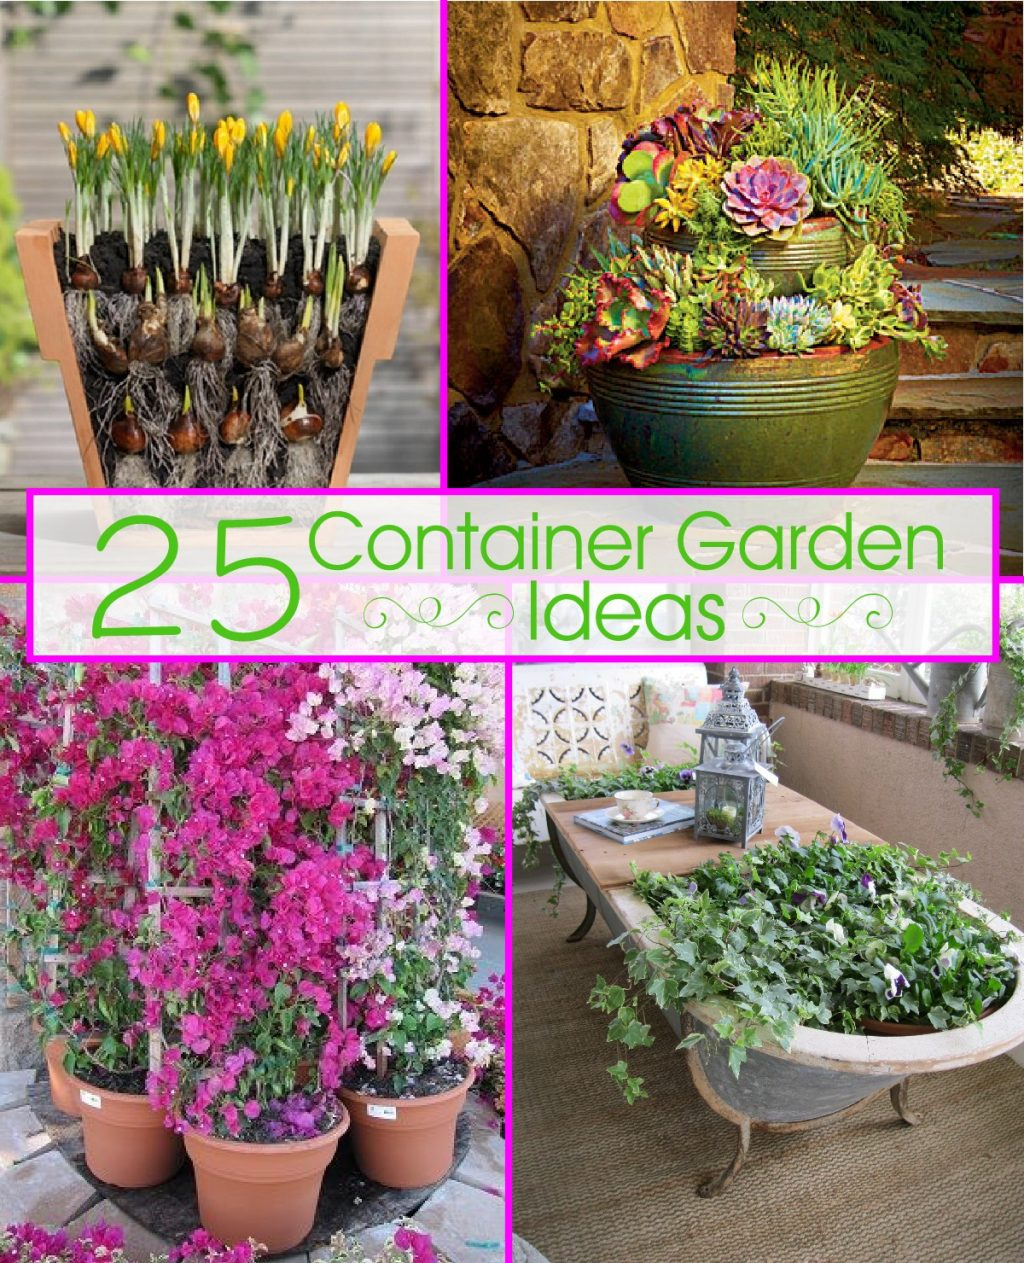 Container Garden Ideas: 25 Container Garden Ideas